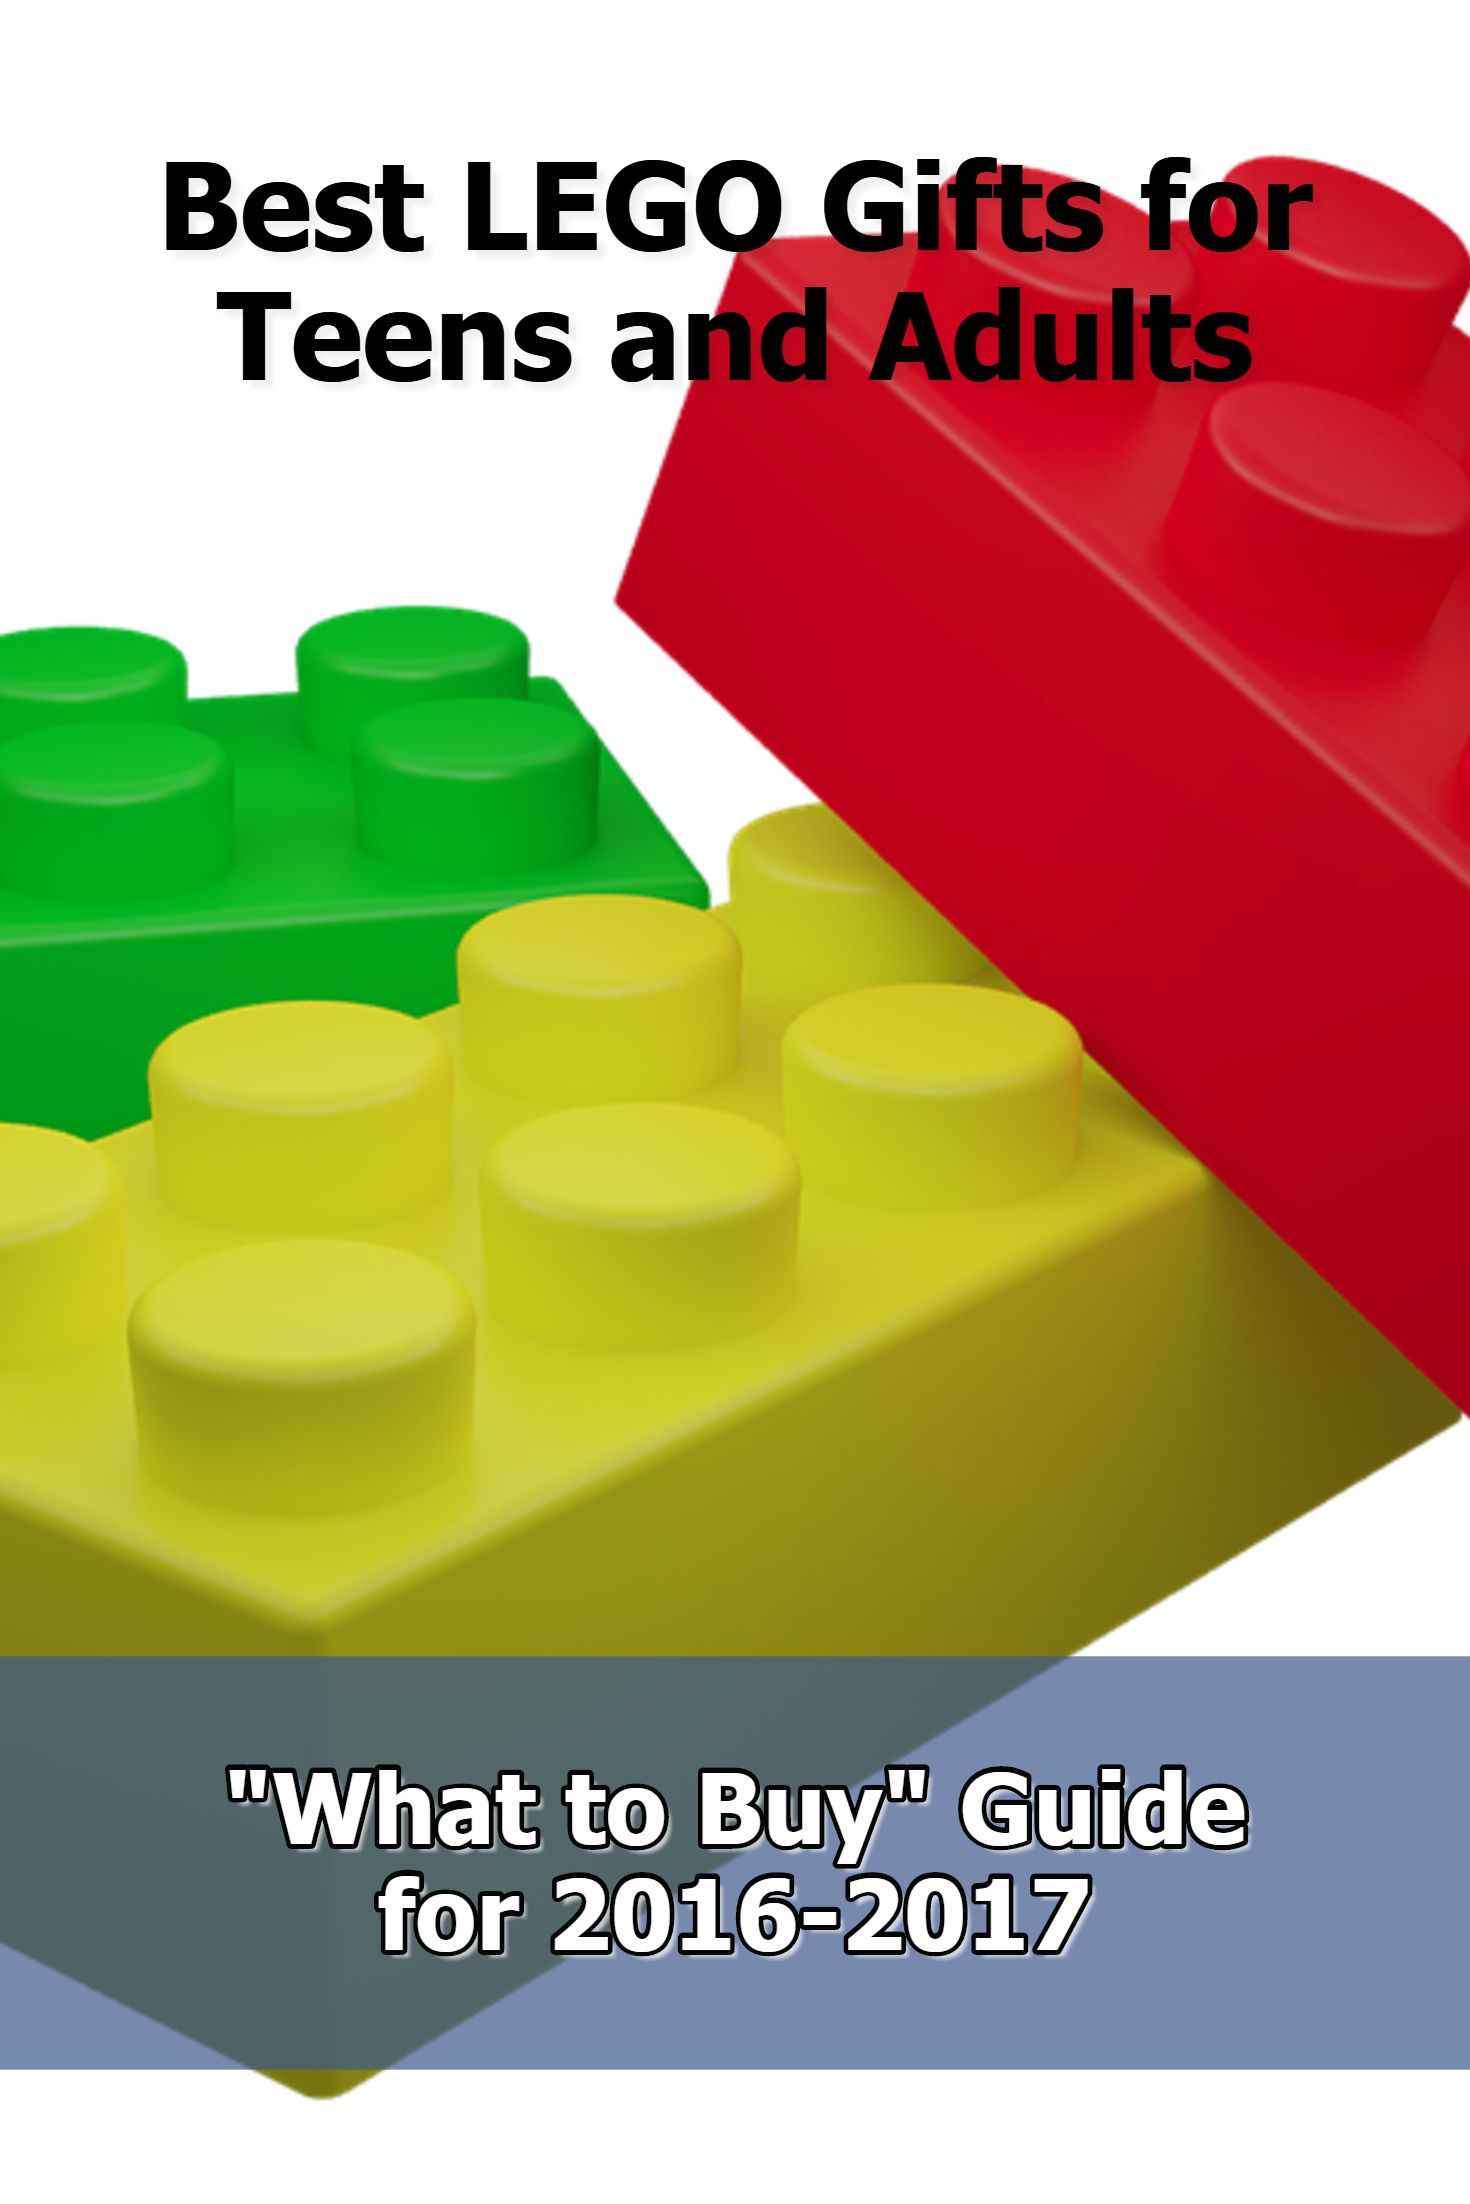 LEGO GIFTS FOR ADULTS AND TEENS 2016 2017 Some great tips on fun